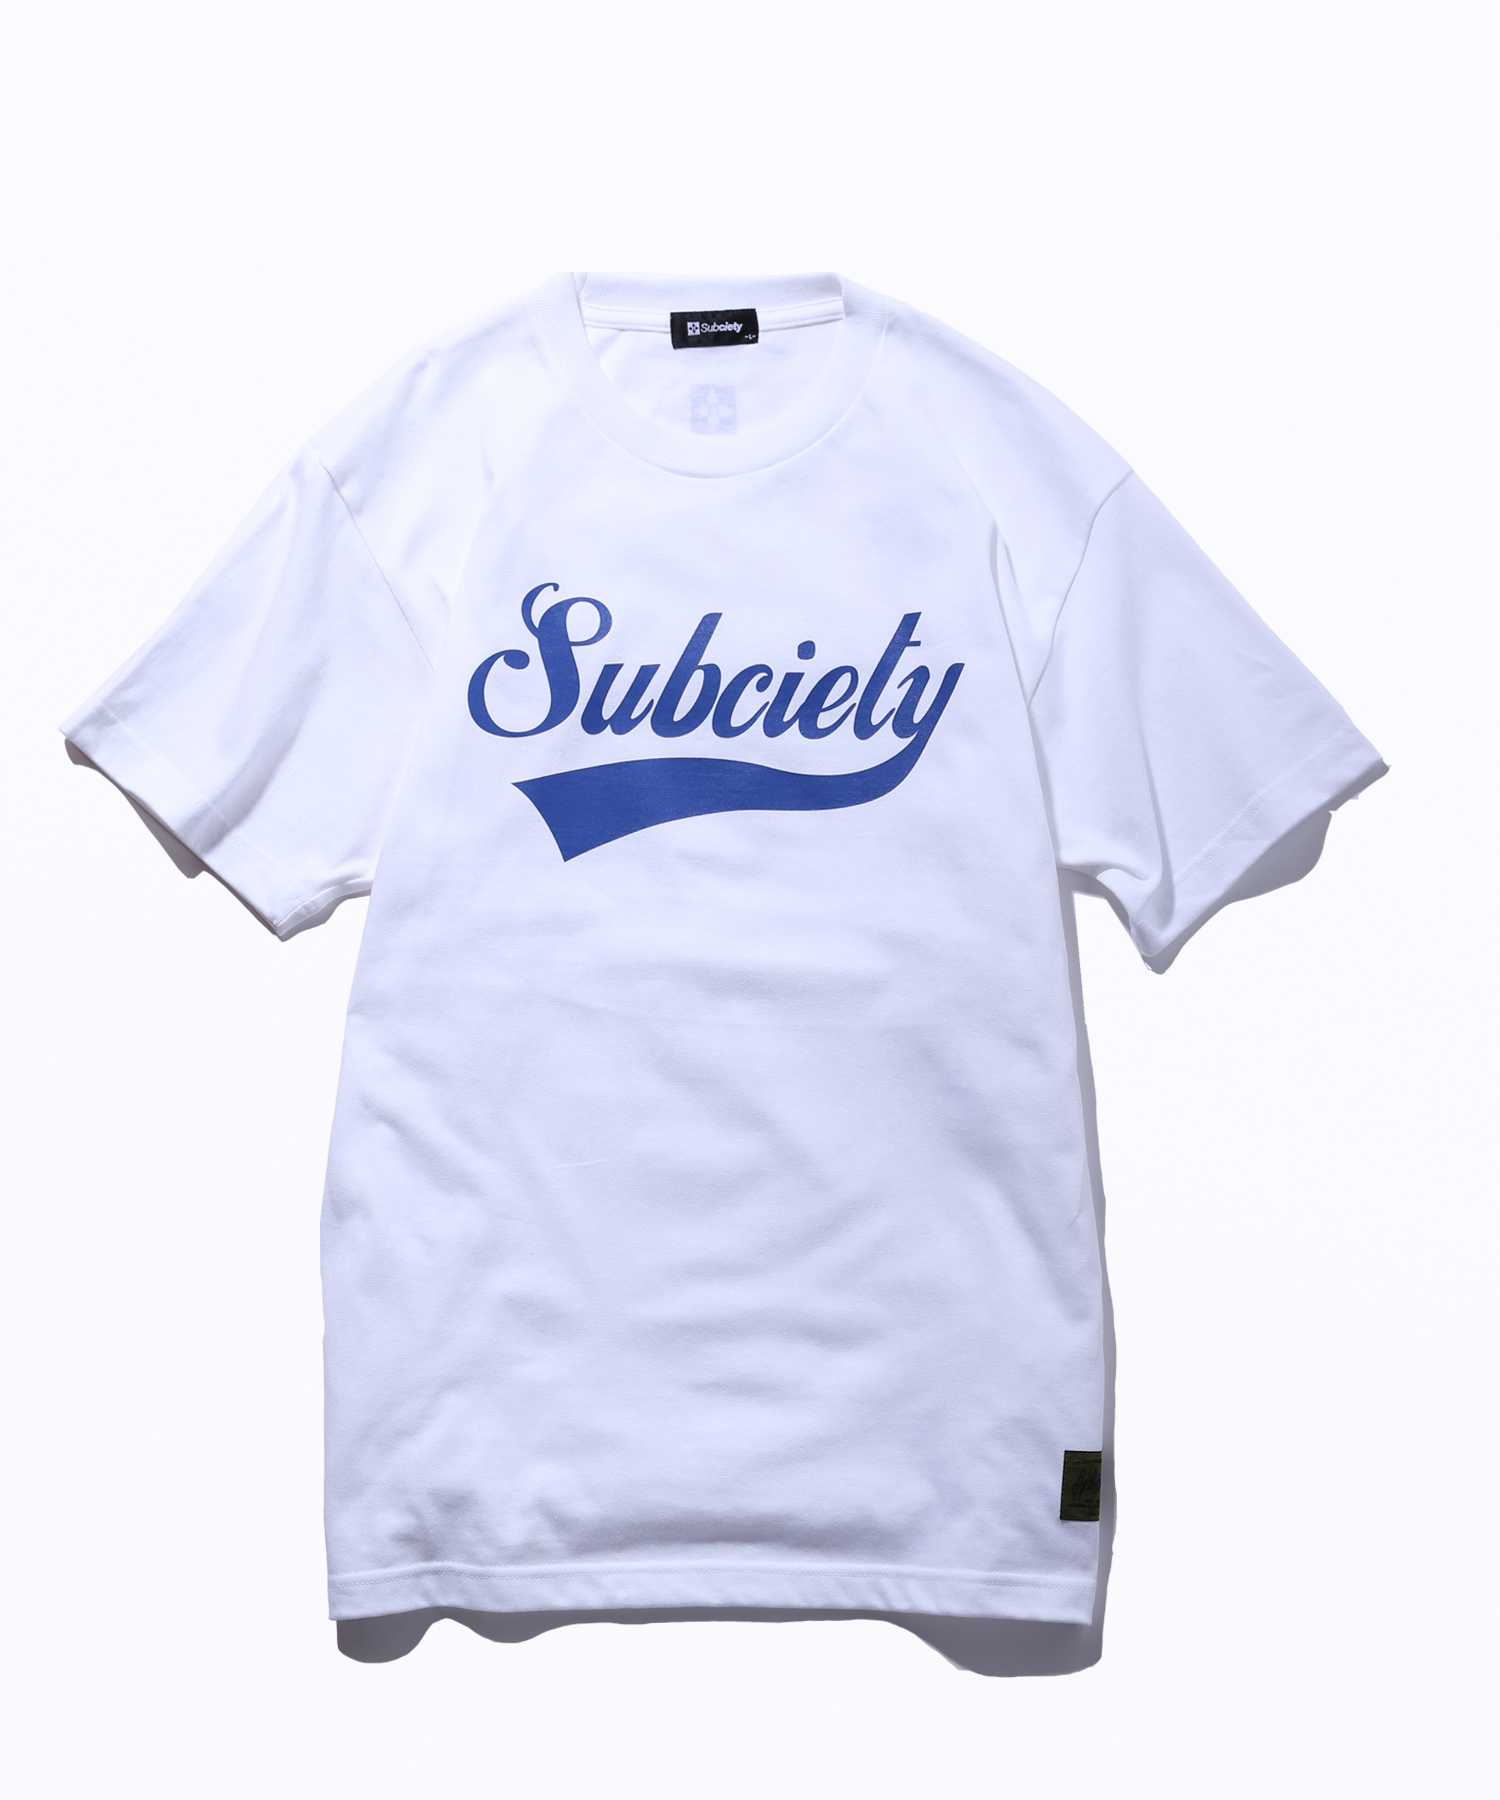 Subciety(サブサエティ) | GLORIOUS S/S (White / Navy)